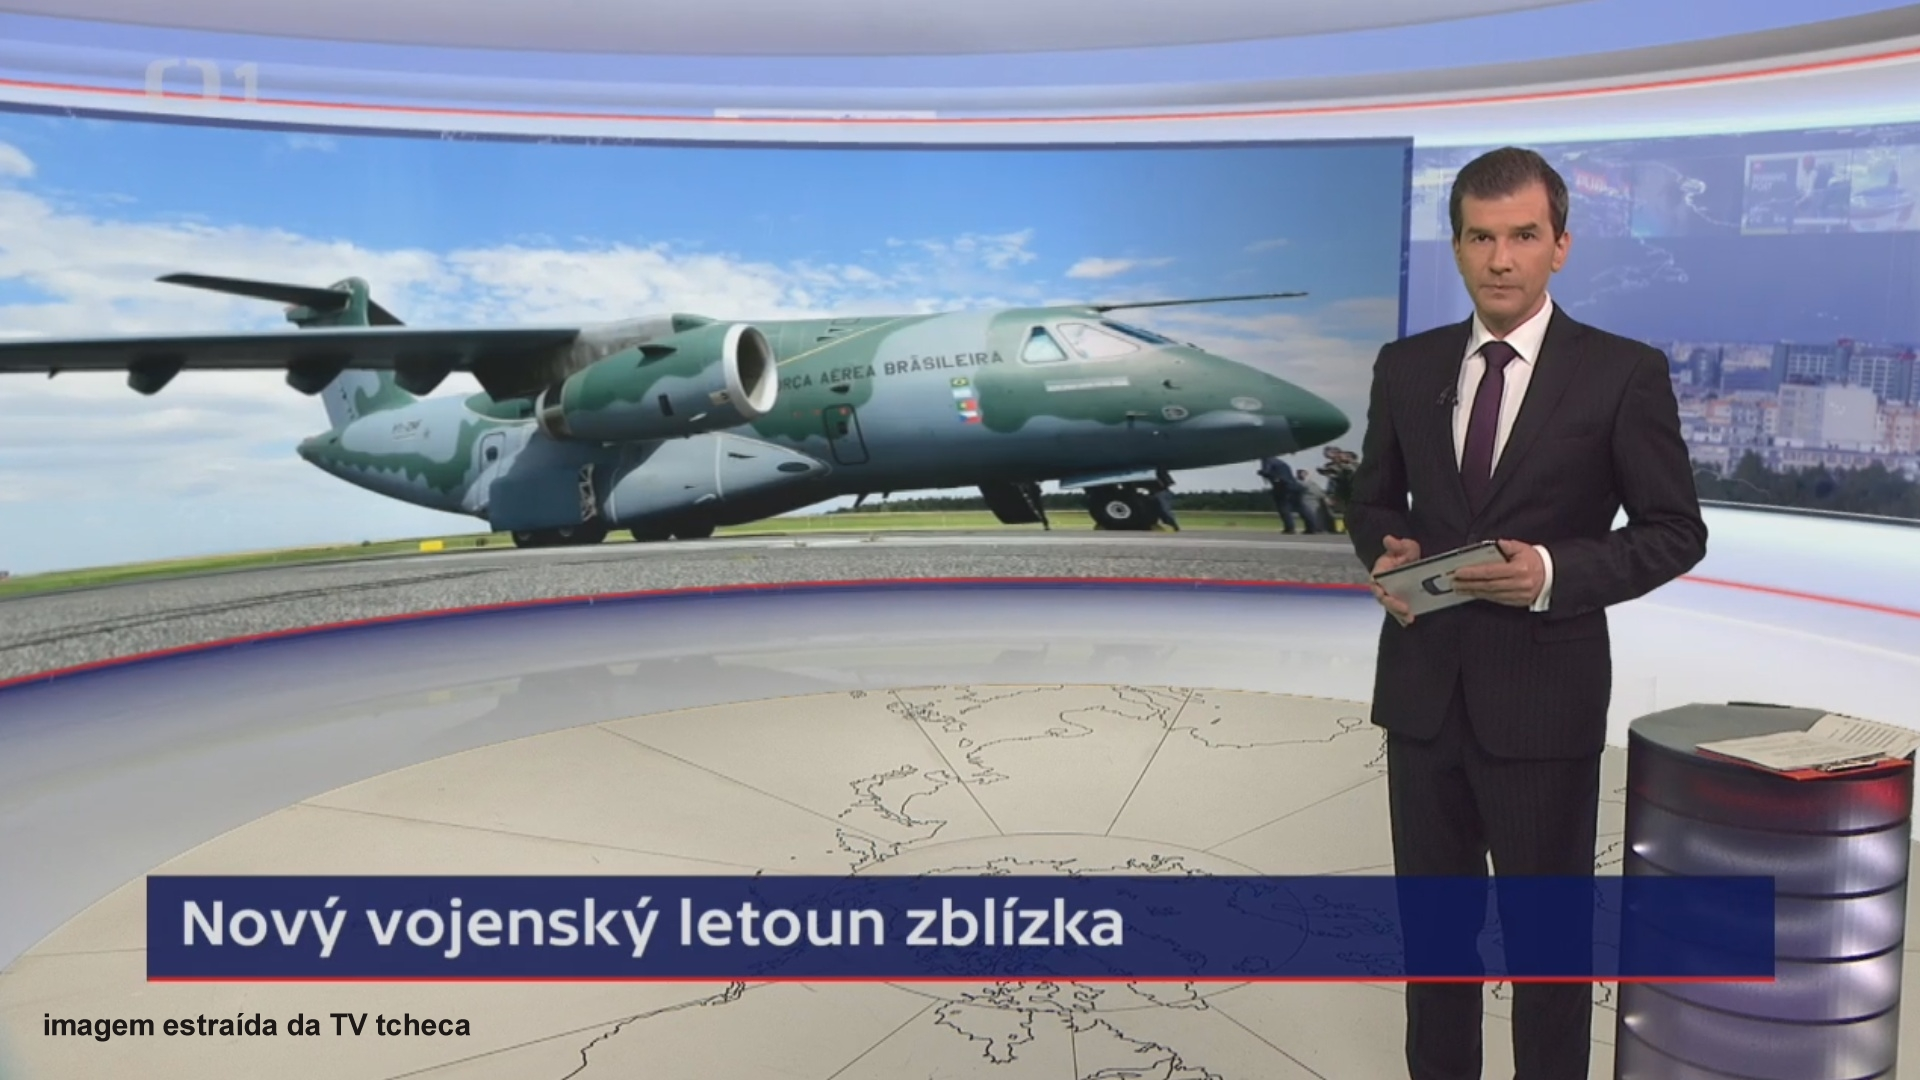 KC-390 foto TV tcheca02